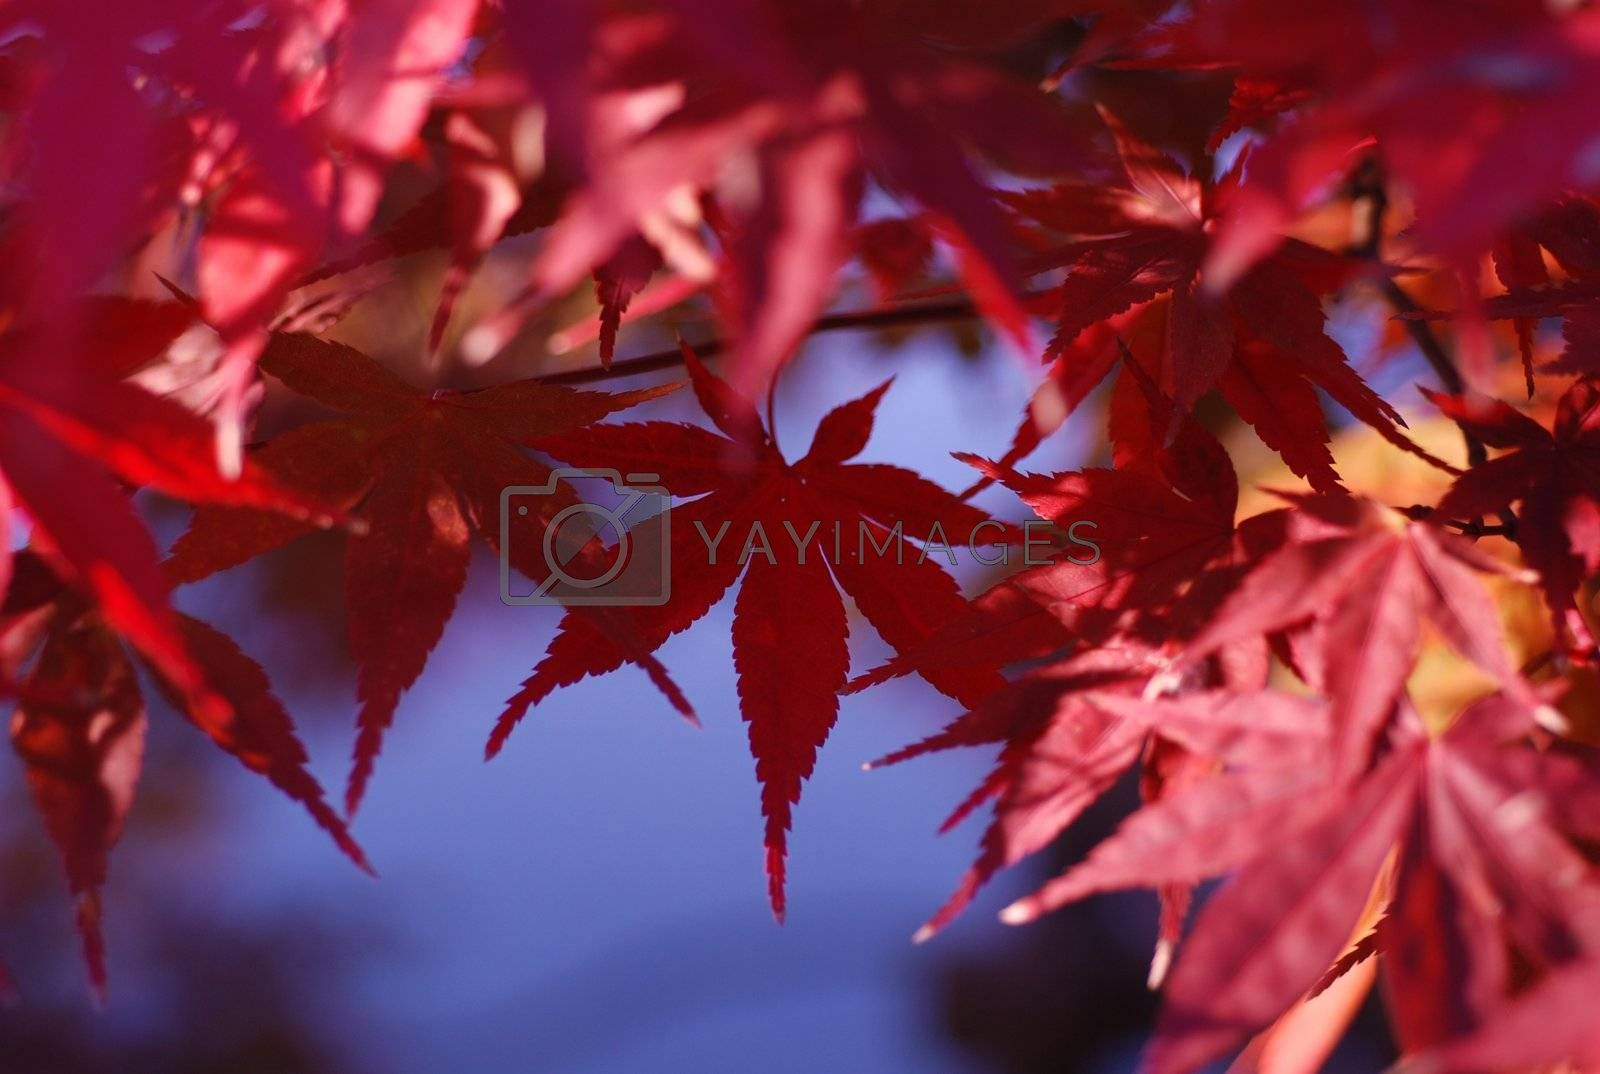 Red maple leaves fill the screen a single leaf hangs down in center of frame